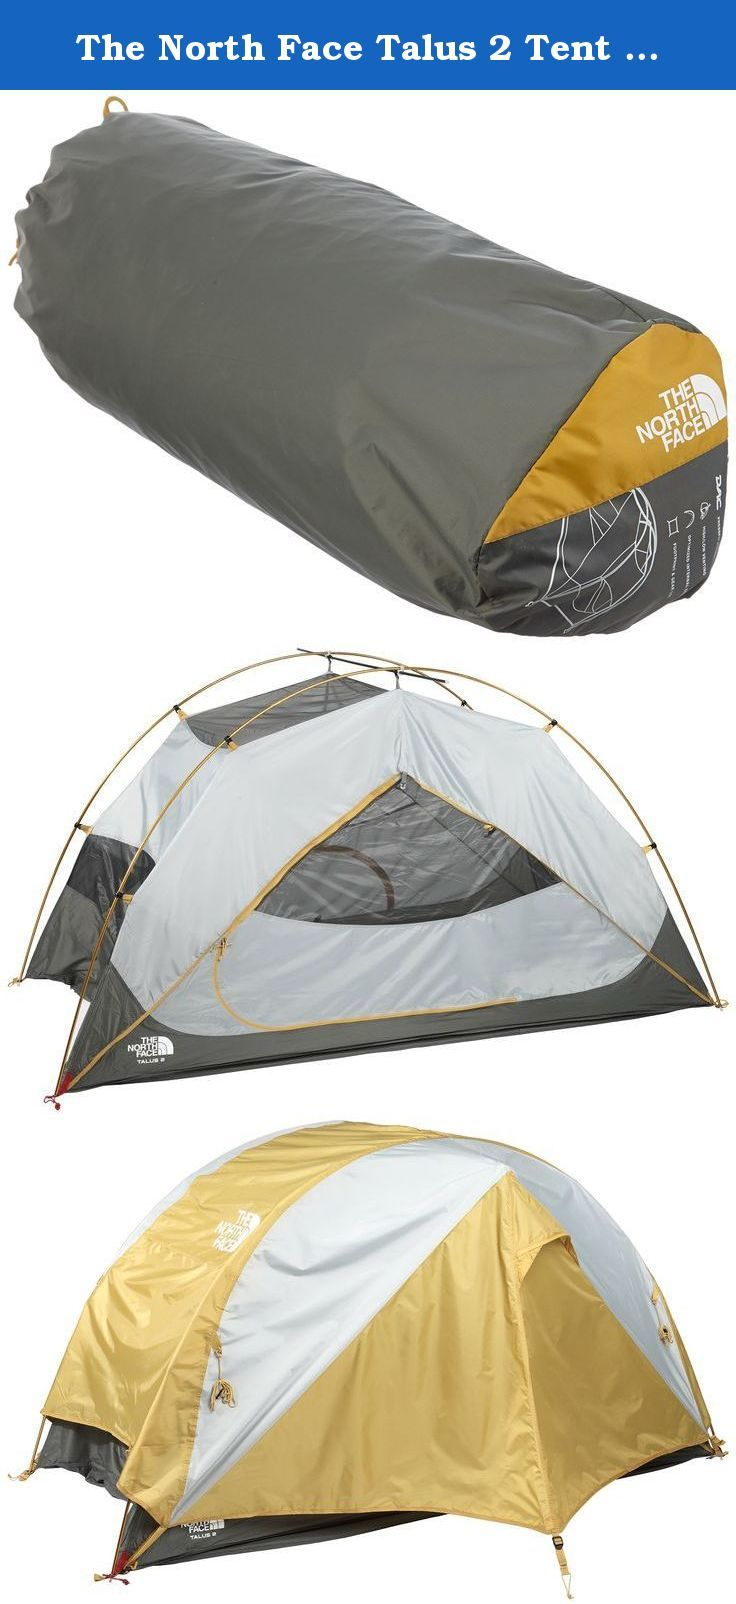 The North Face Talus 2 Tent - Castor Grey/Arrowwood Yellow. New for 2014  sc 1 st  Pinterest & The North Face Talus 2 Tent - Castor Grey/Arrowwood Yellow. New ...